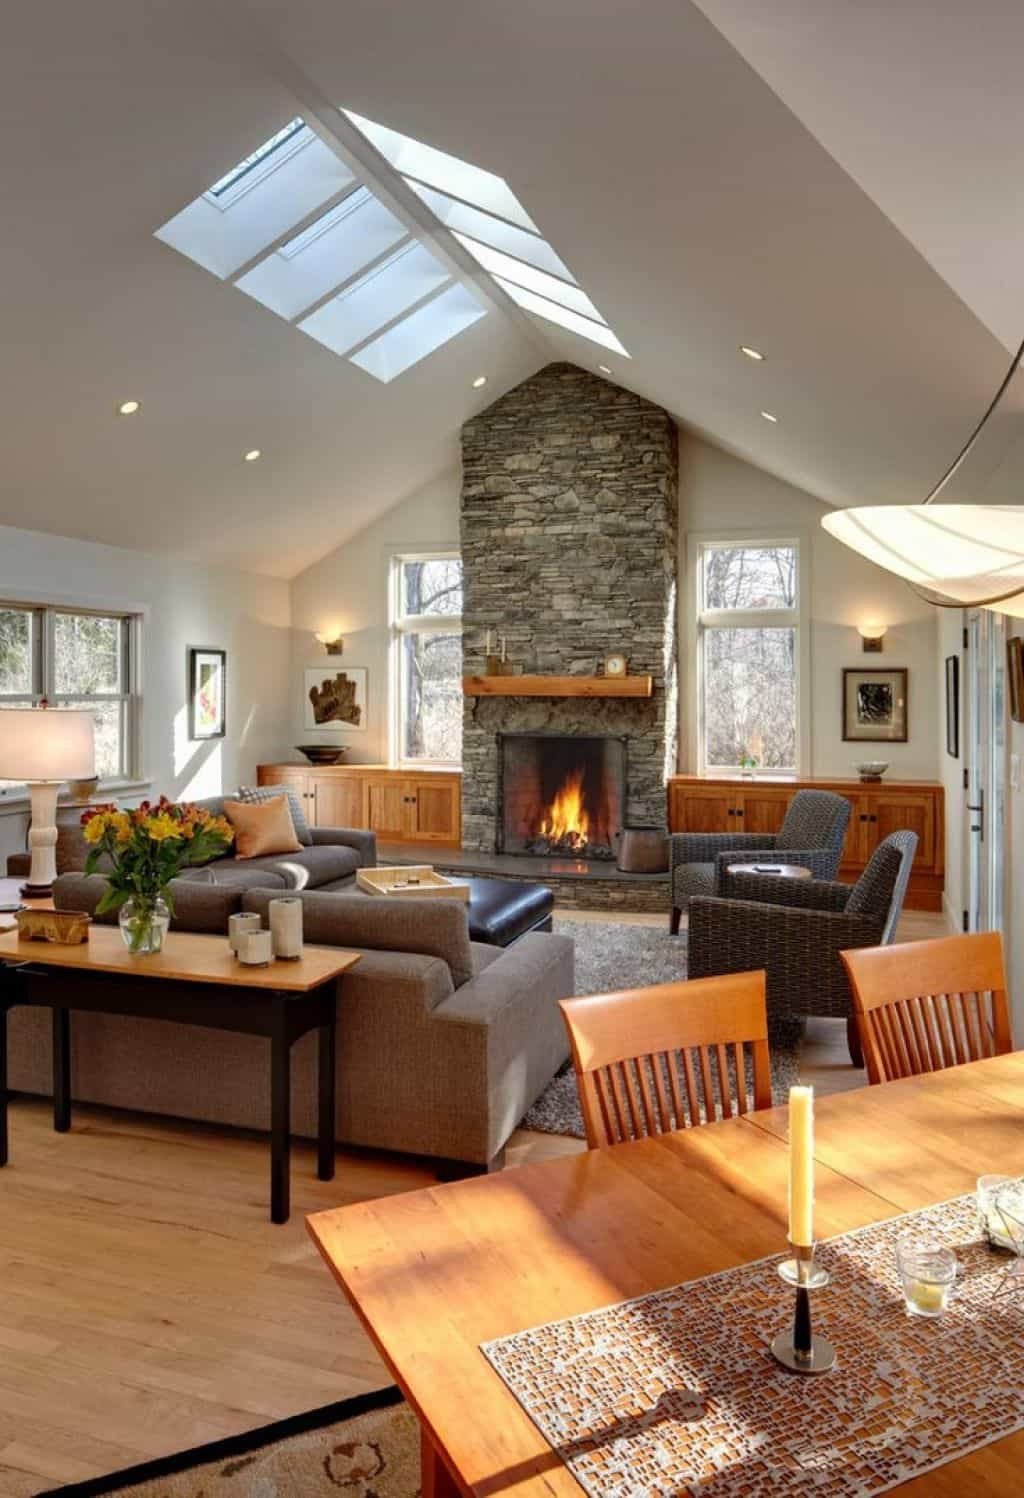 Comfortable Living Room Fireplace Best Of fortable Living Room Designed with Stone Fireplace and Skylights Also Recessed Lights